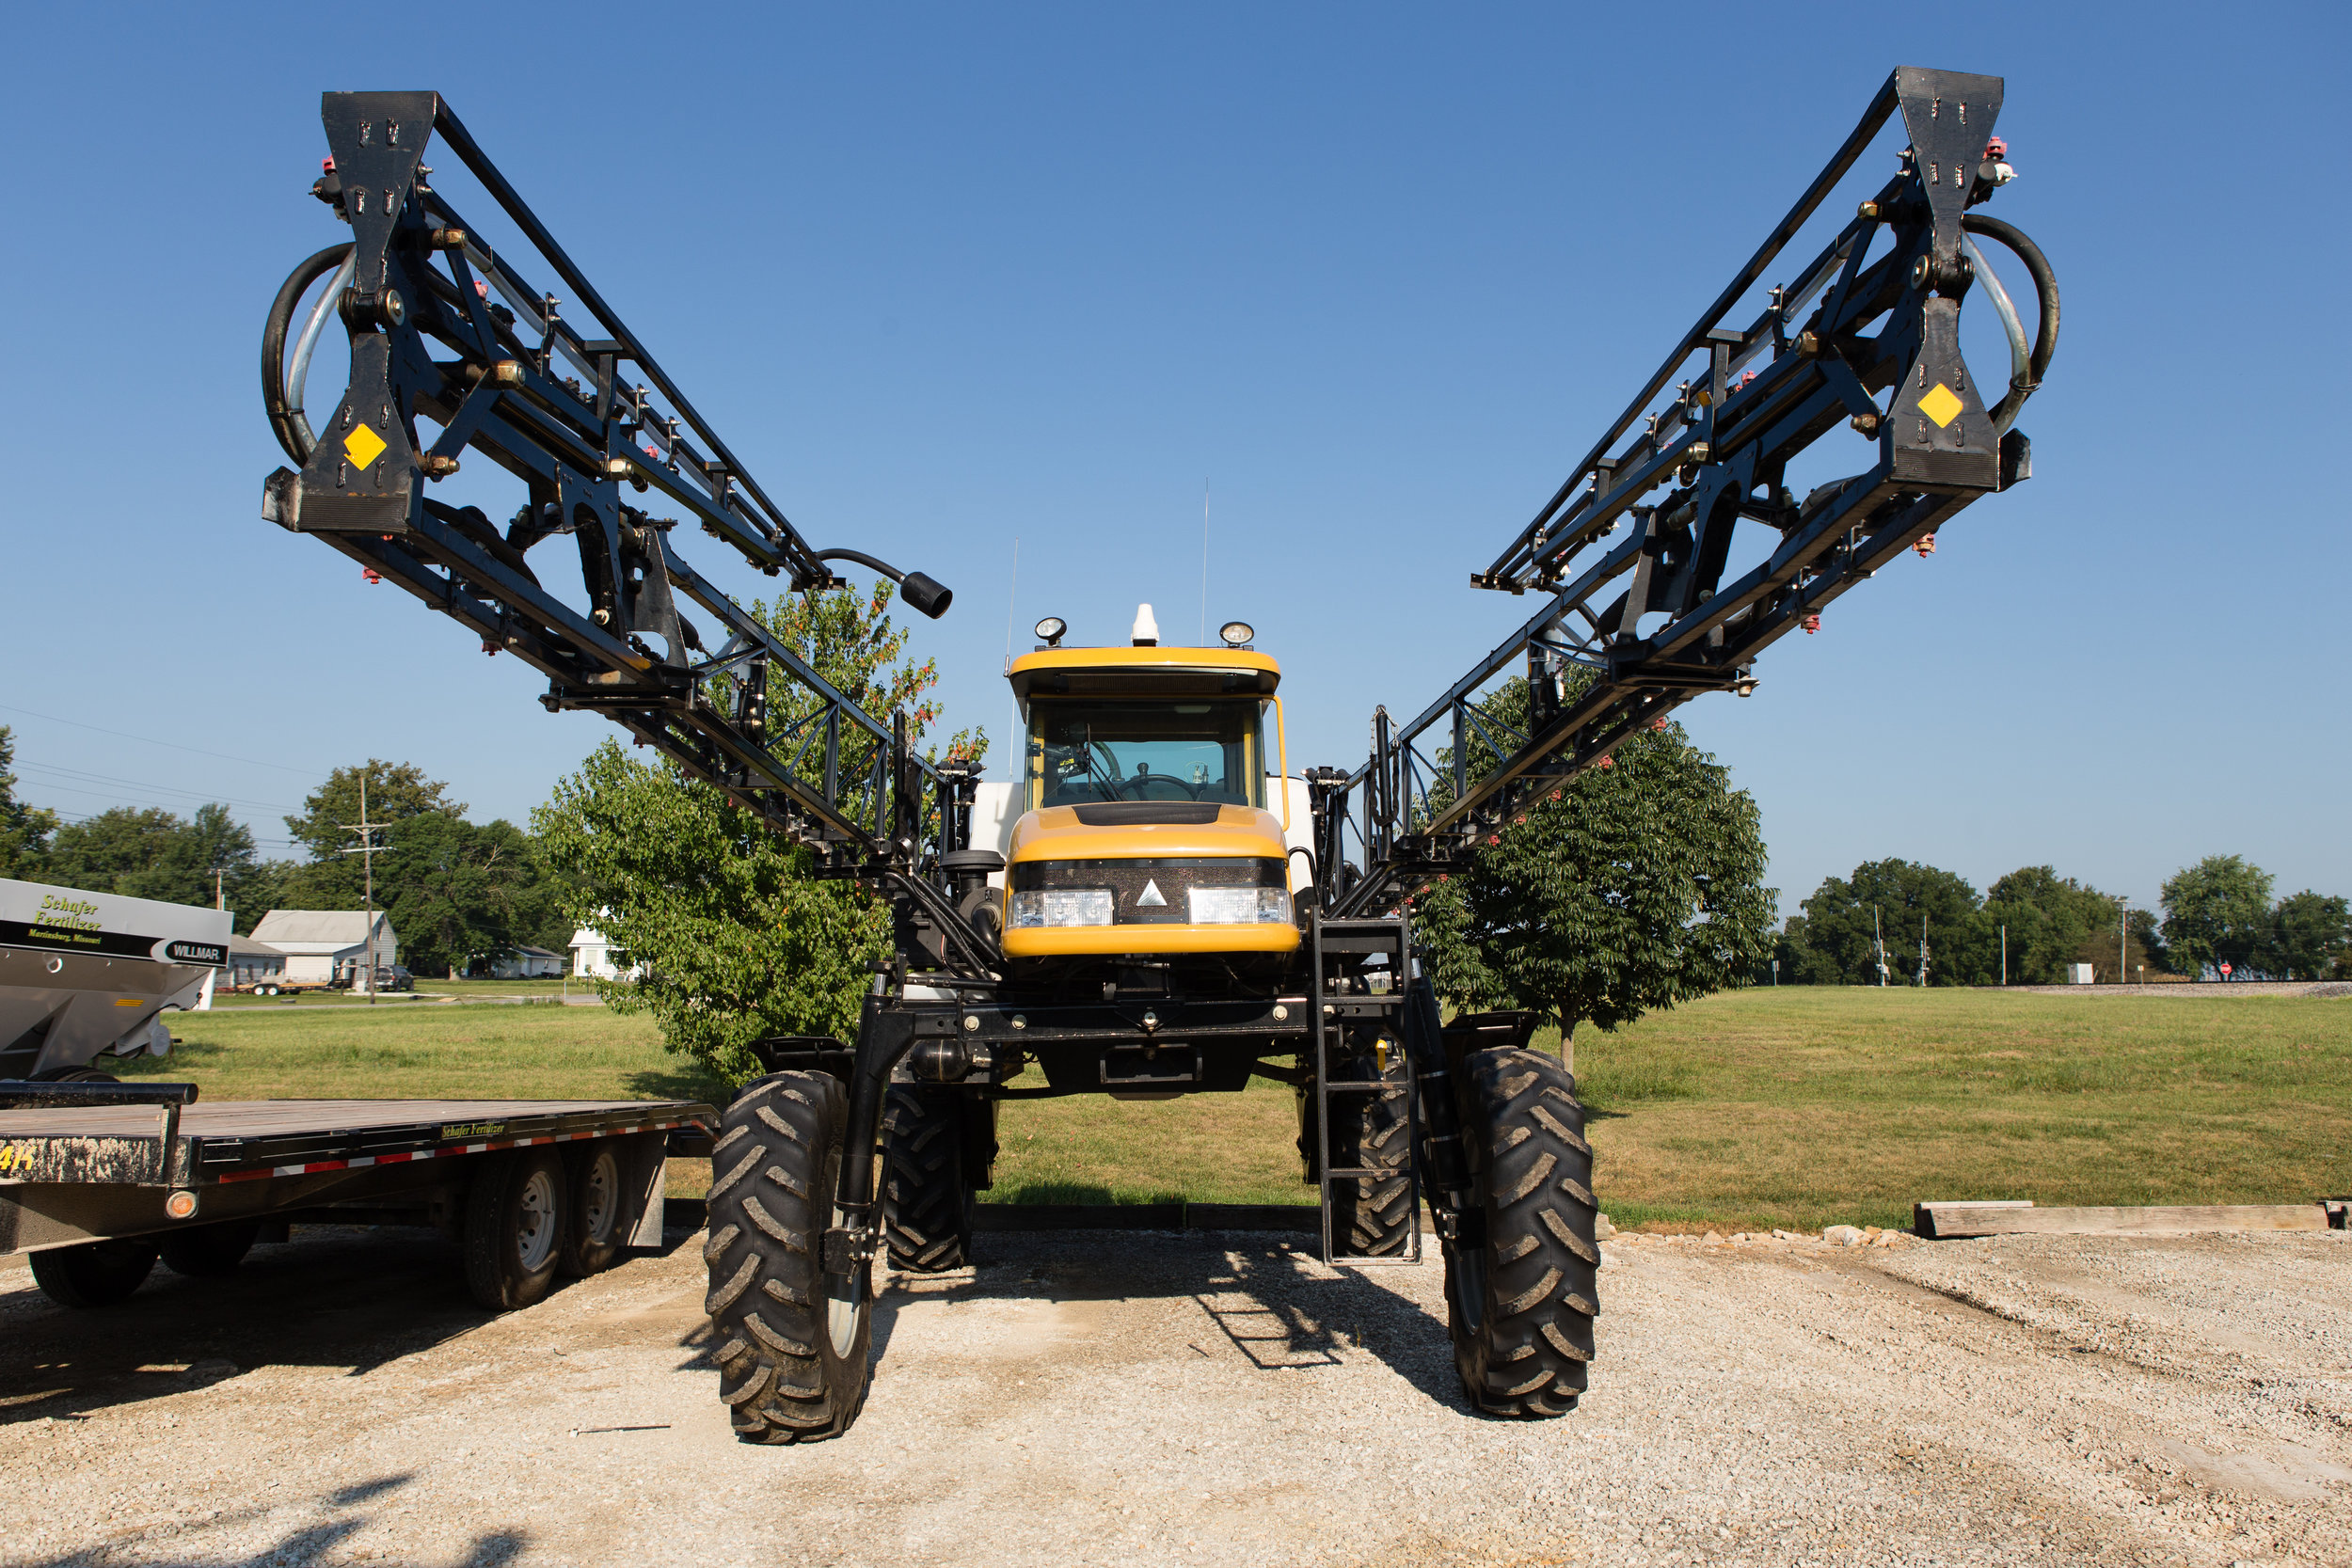 Image of sprayer by United Soybean Board.